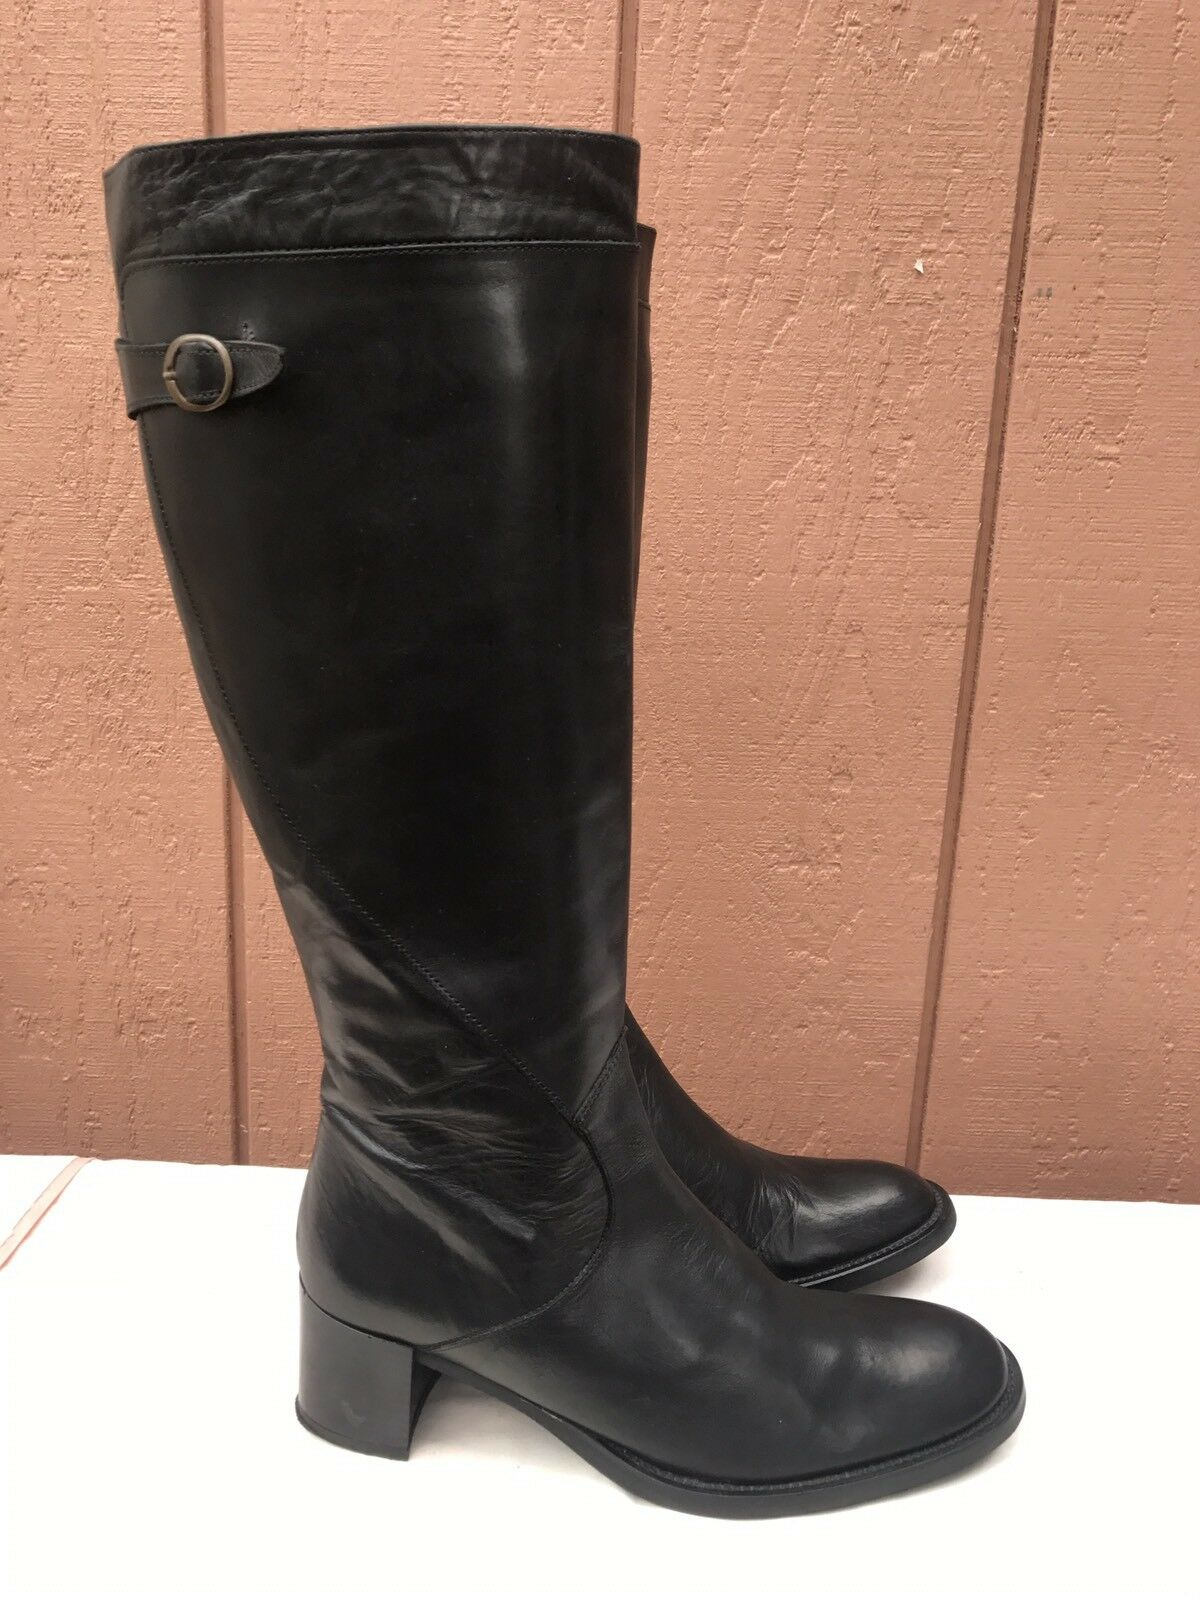 EUC Balmain Riding Black US 8.5 Leather Boots Buckle Full Zip